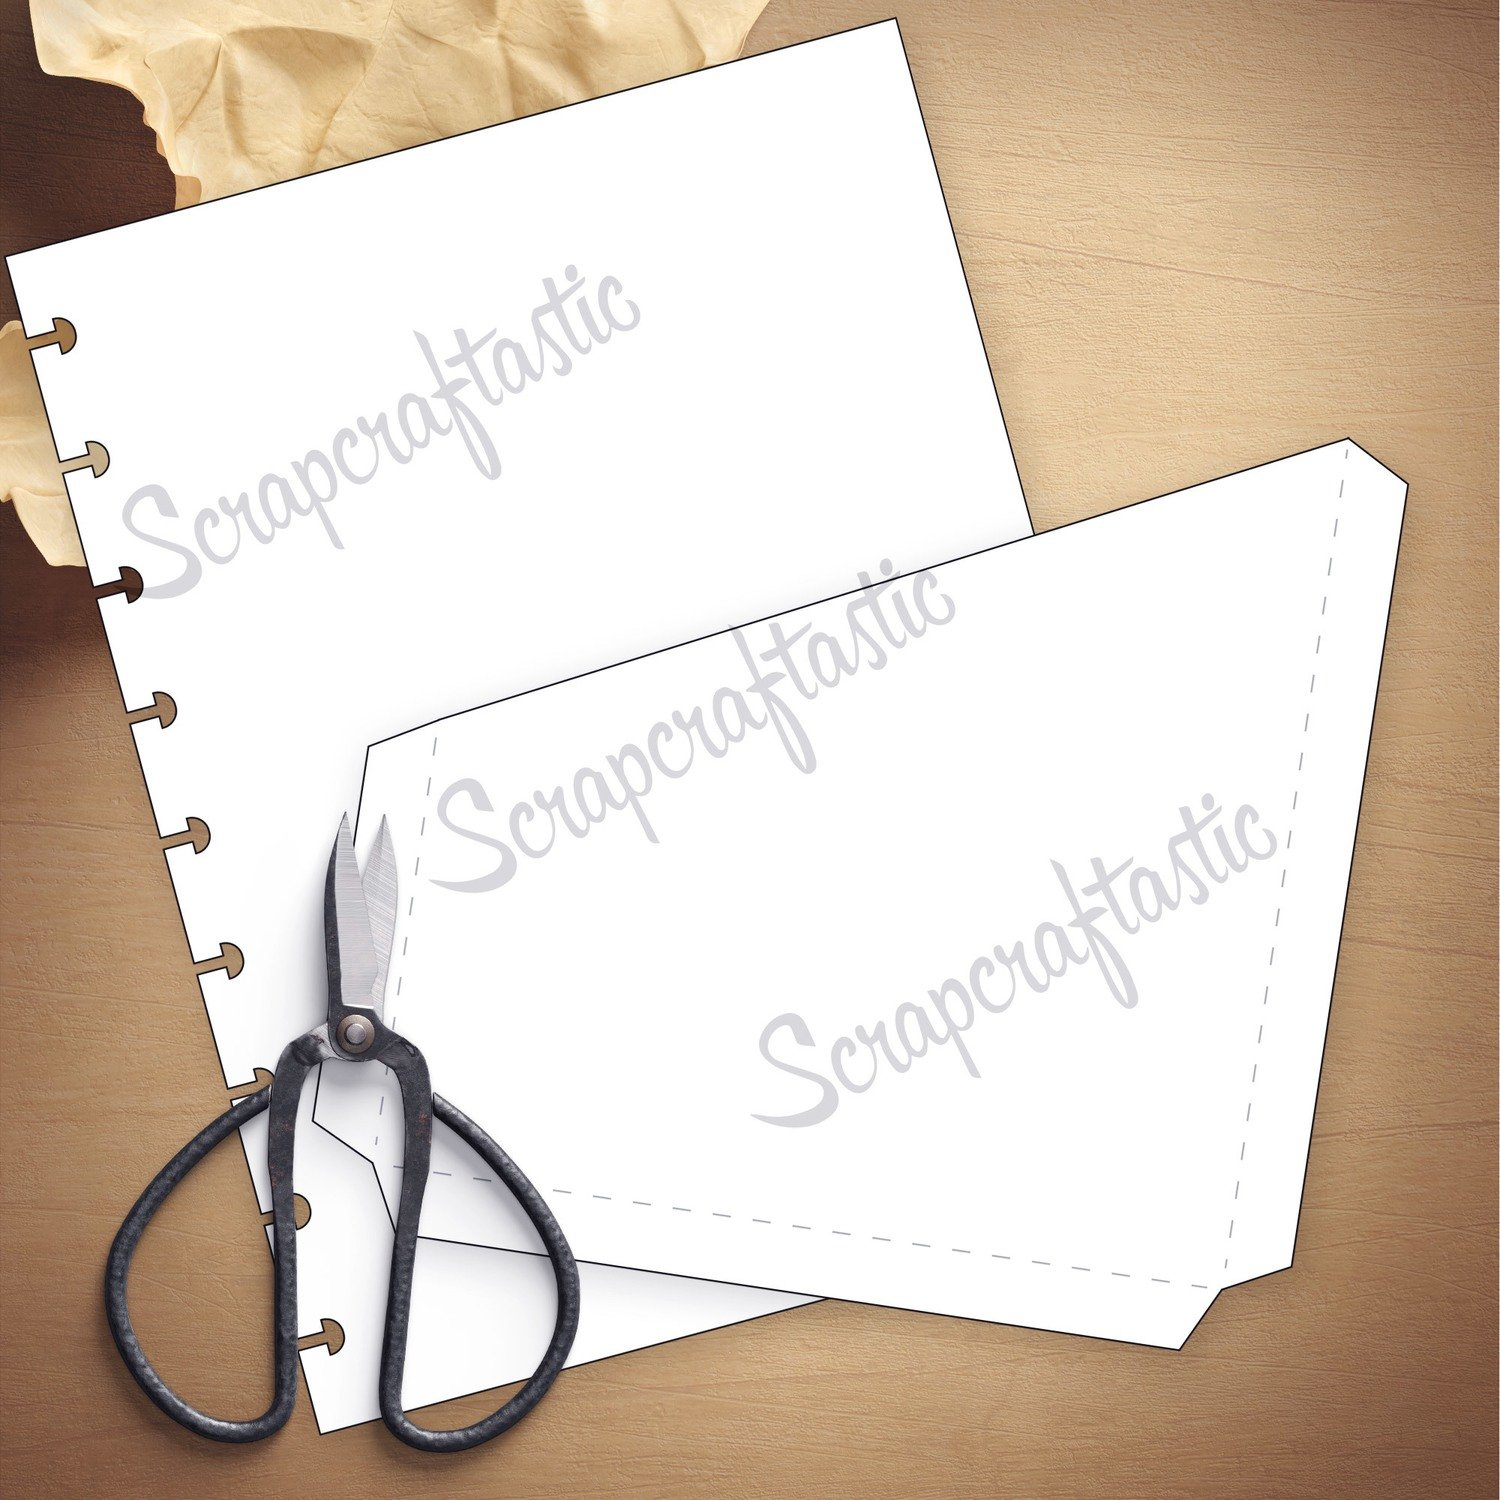 LETTER SIZE DISCS Folder Insert Template and Cut Files